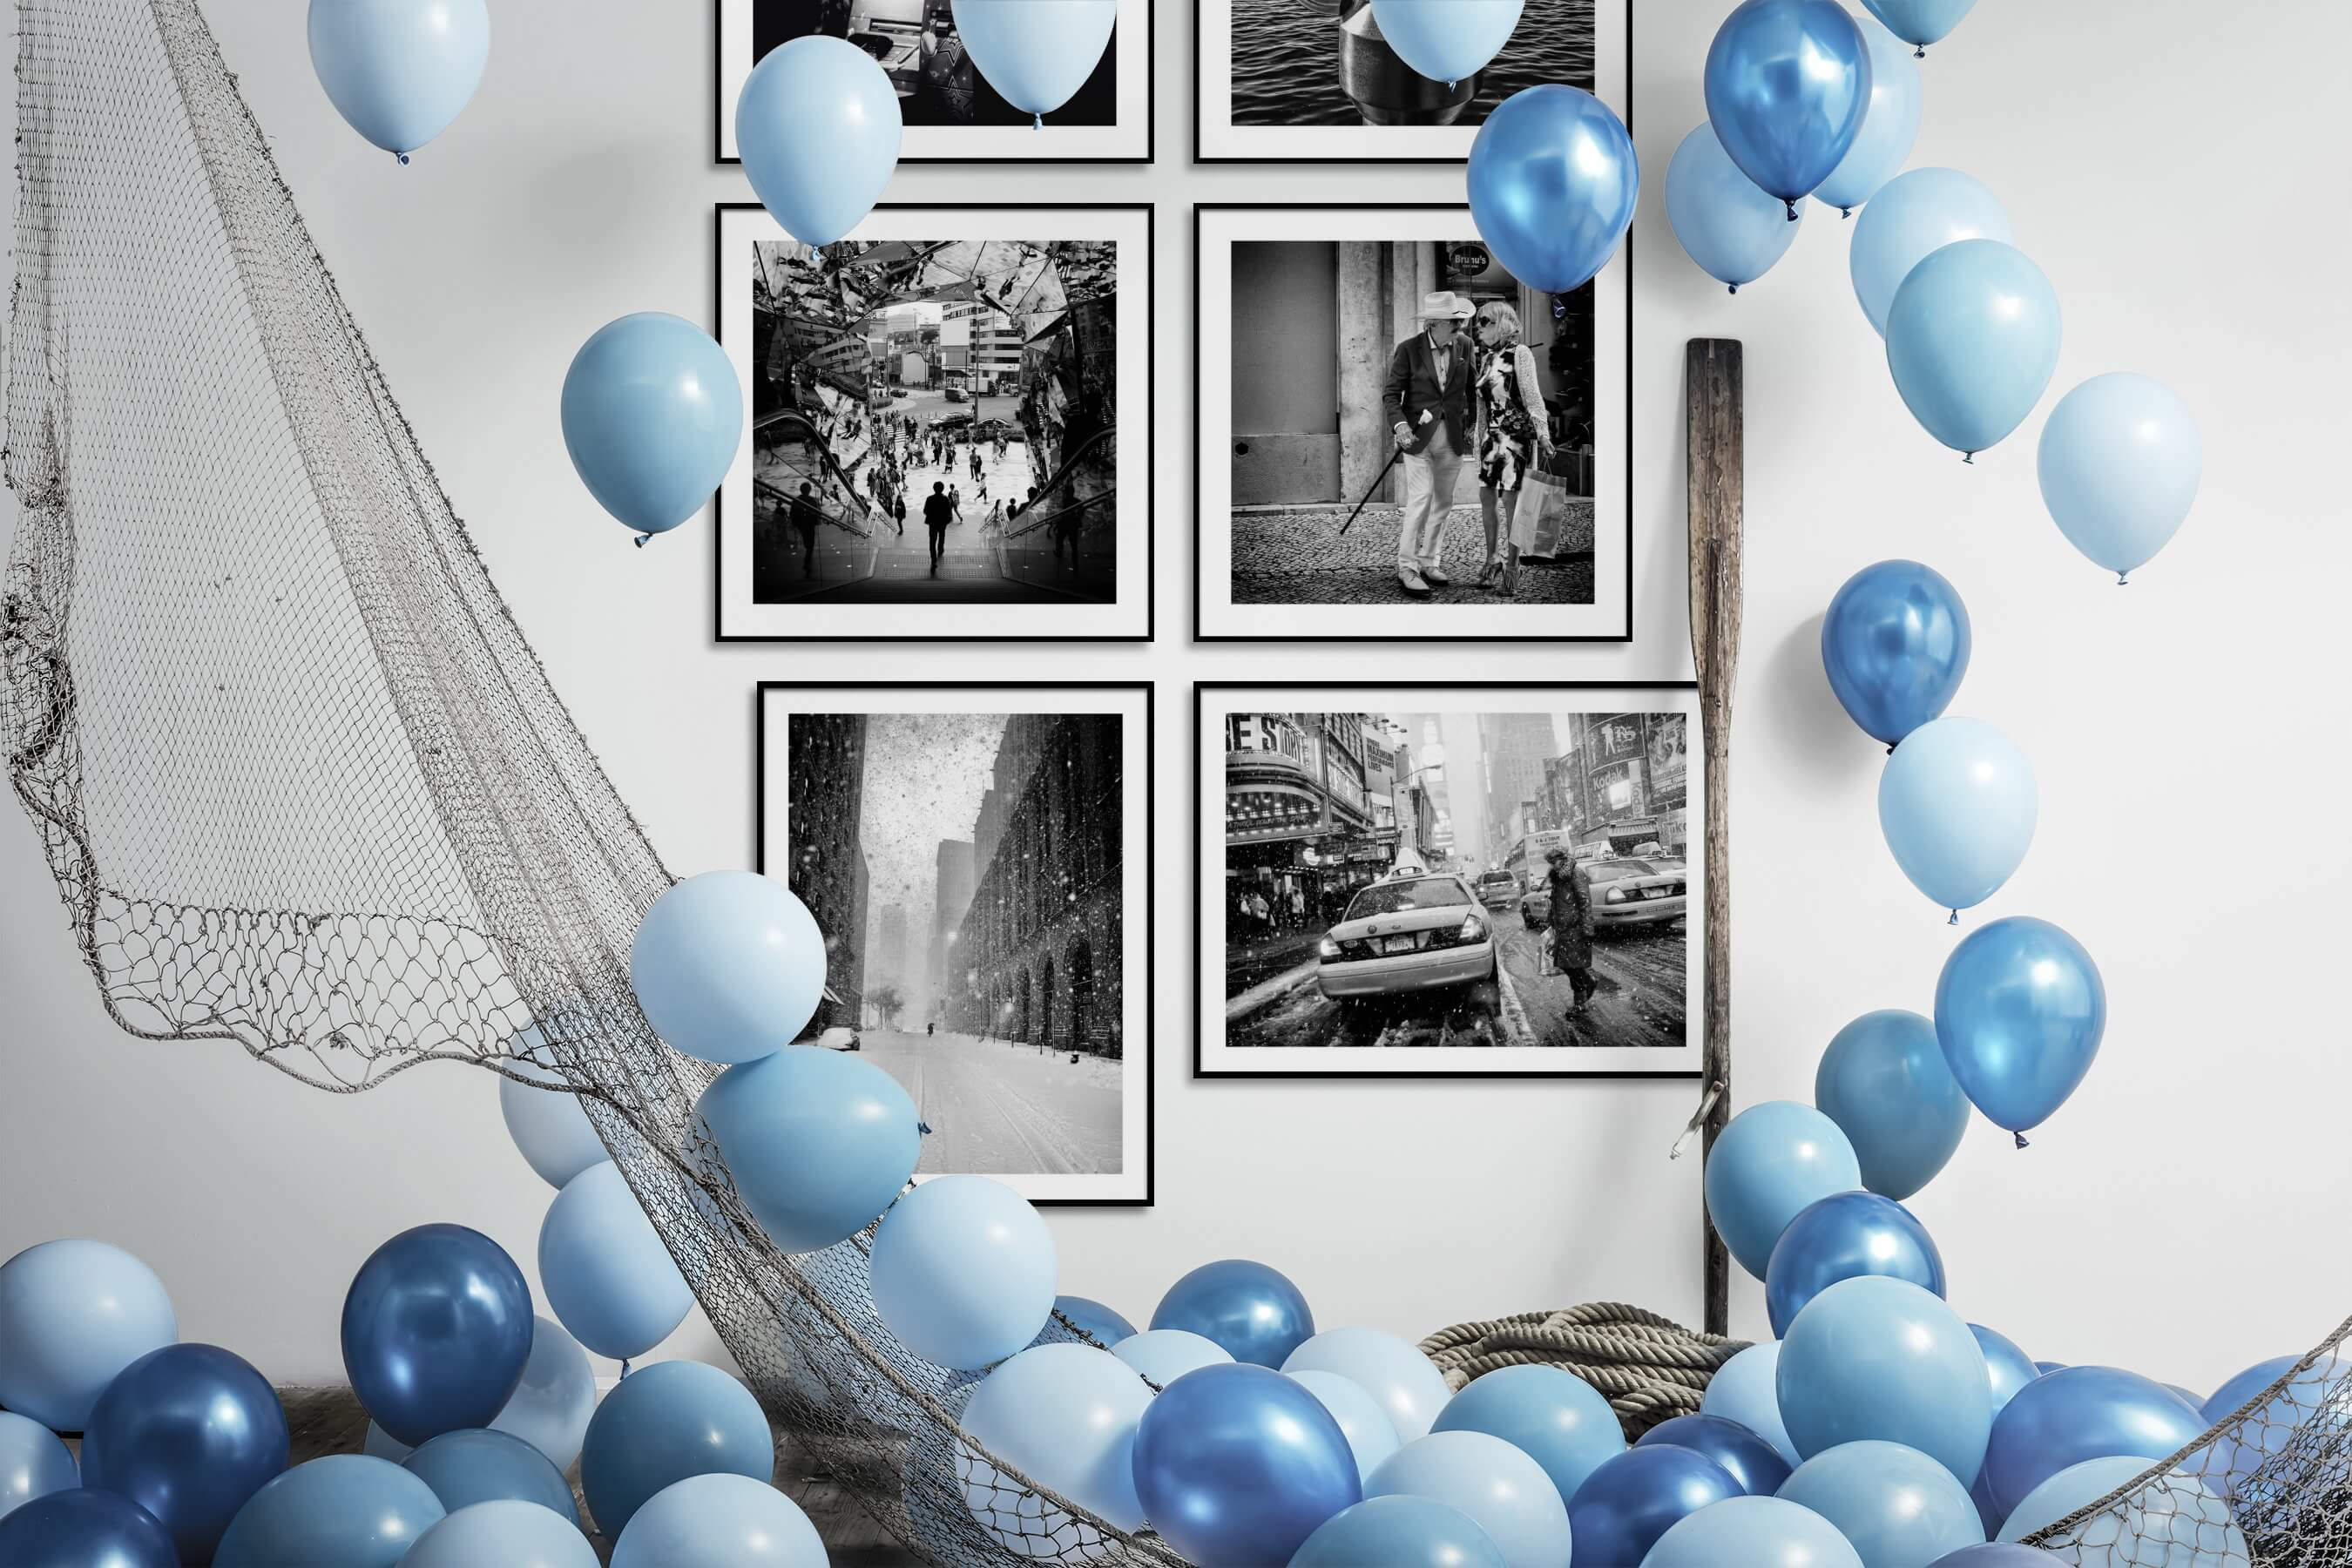 Gallery wall idea with six framed pictures arranged on a wall depicting Black & White, Vintage, Beach & Water, City Life, Fashion & Beauty, and Americana